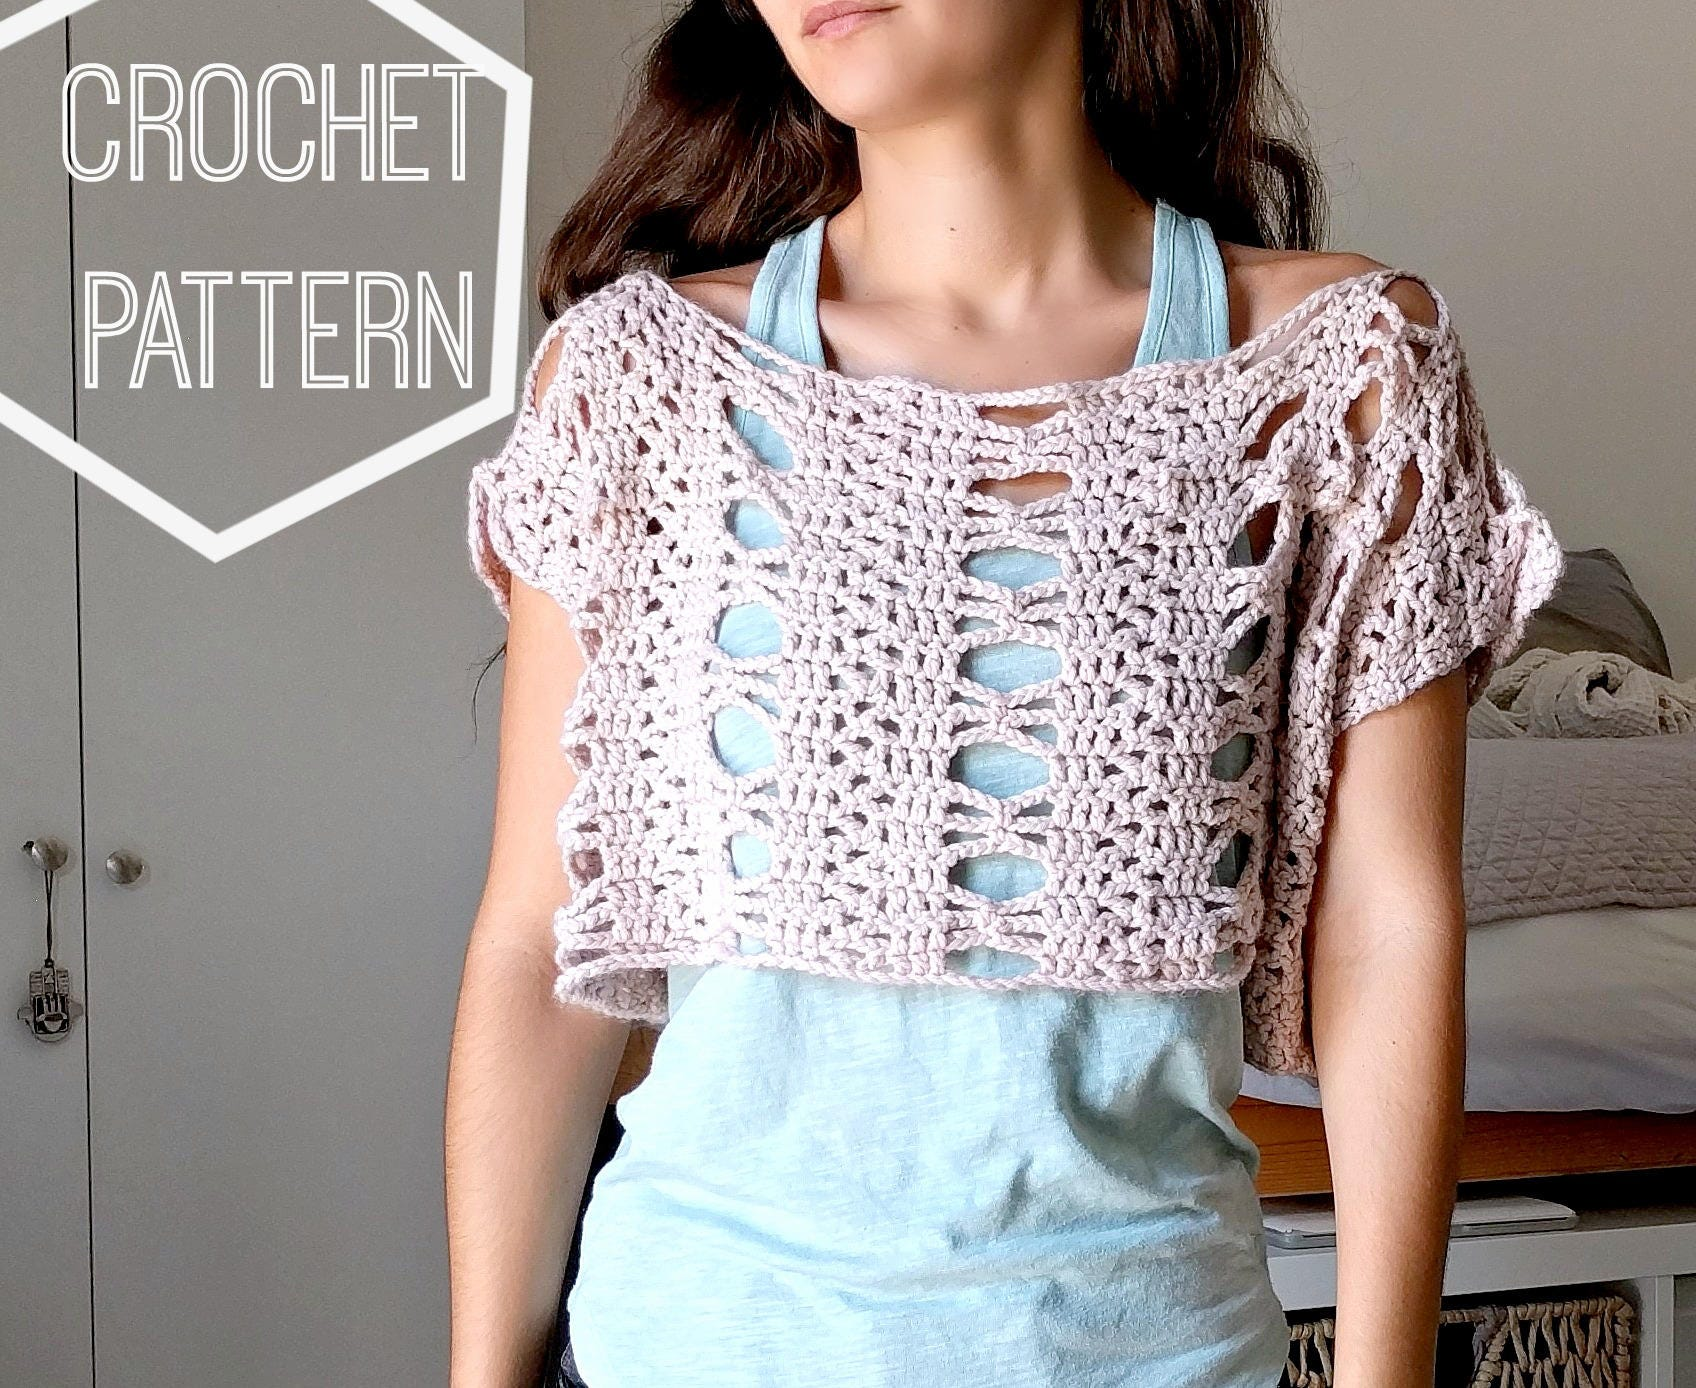 Lace Crochet Boxy Top Pattern Lace Crochet Top Pattern